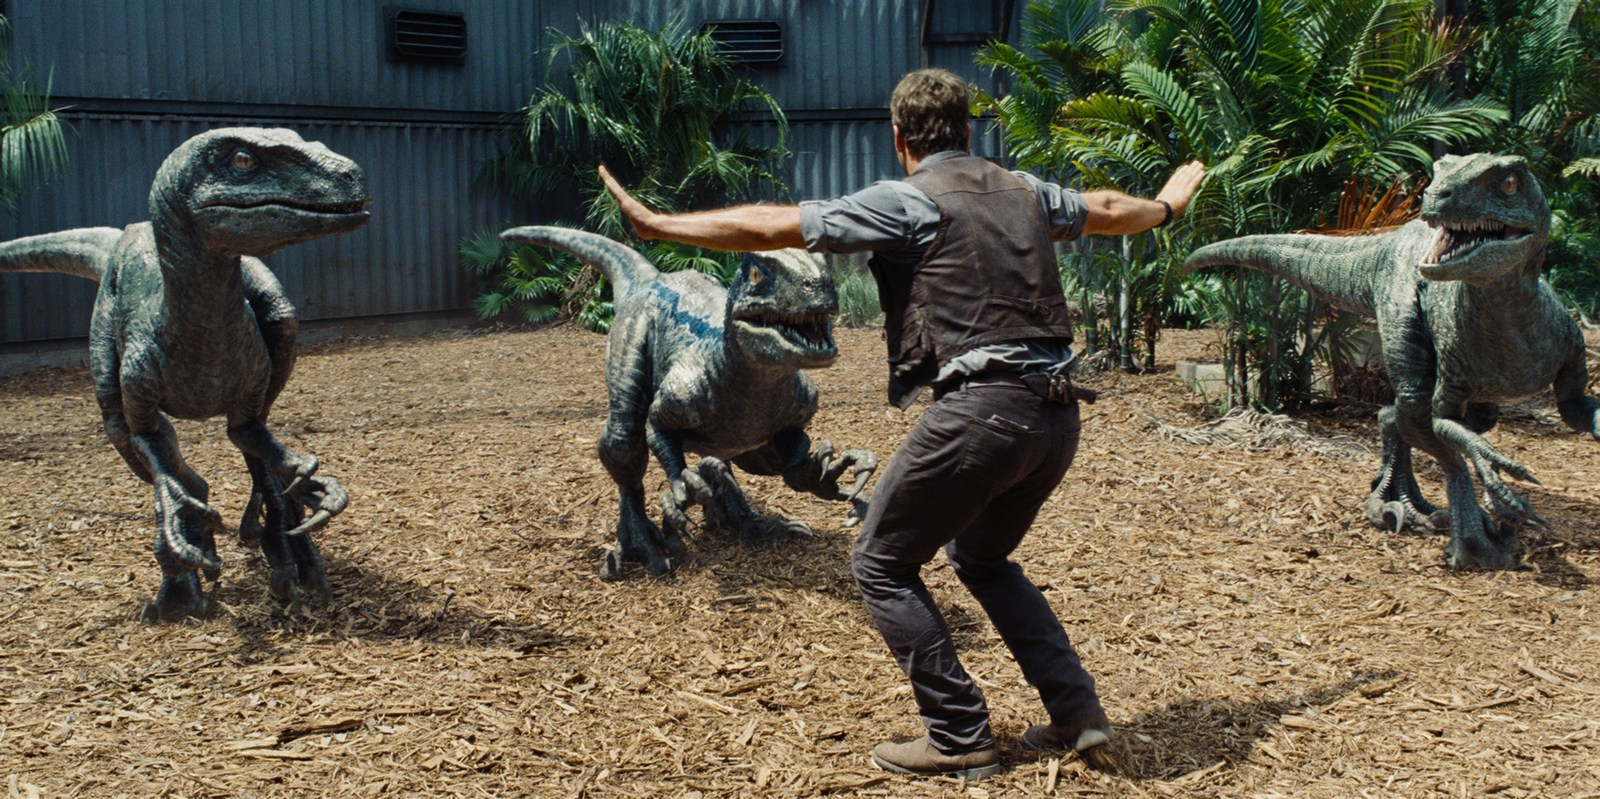 In Jurassic World You Can Almost Smell the Dinosaur's Breath